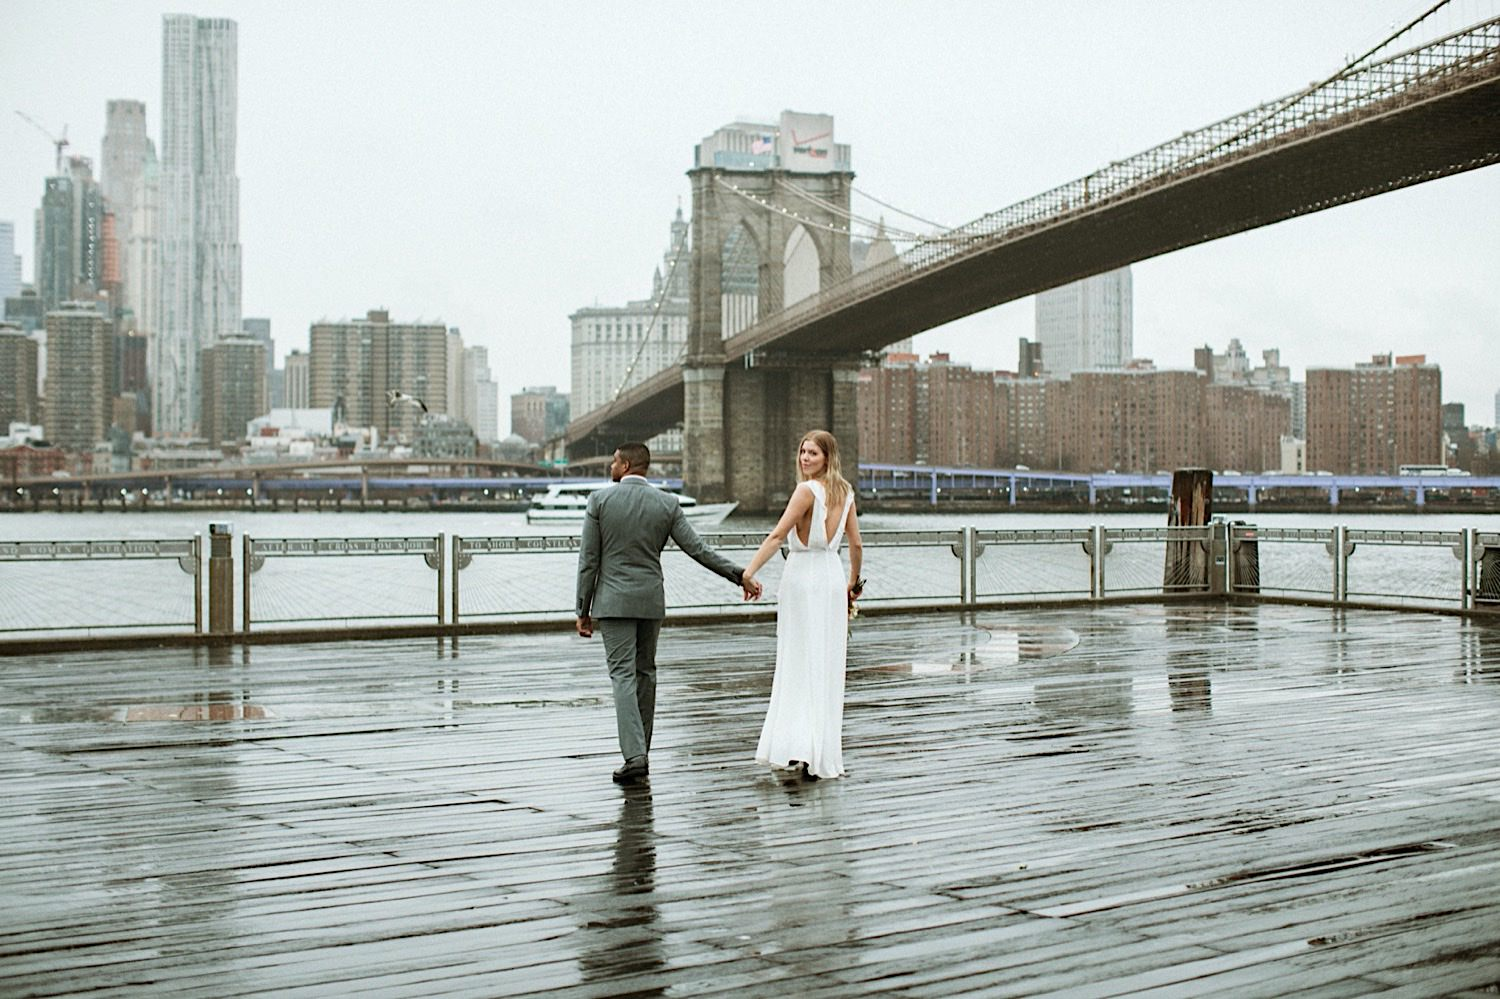 DUMBO Wedding - Bride in sleeveless dress leads groom on the pier in DUMBO Brooklyn facing the Brooklyn Bridge